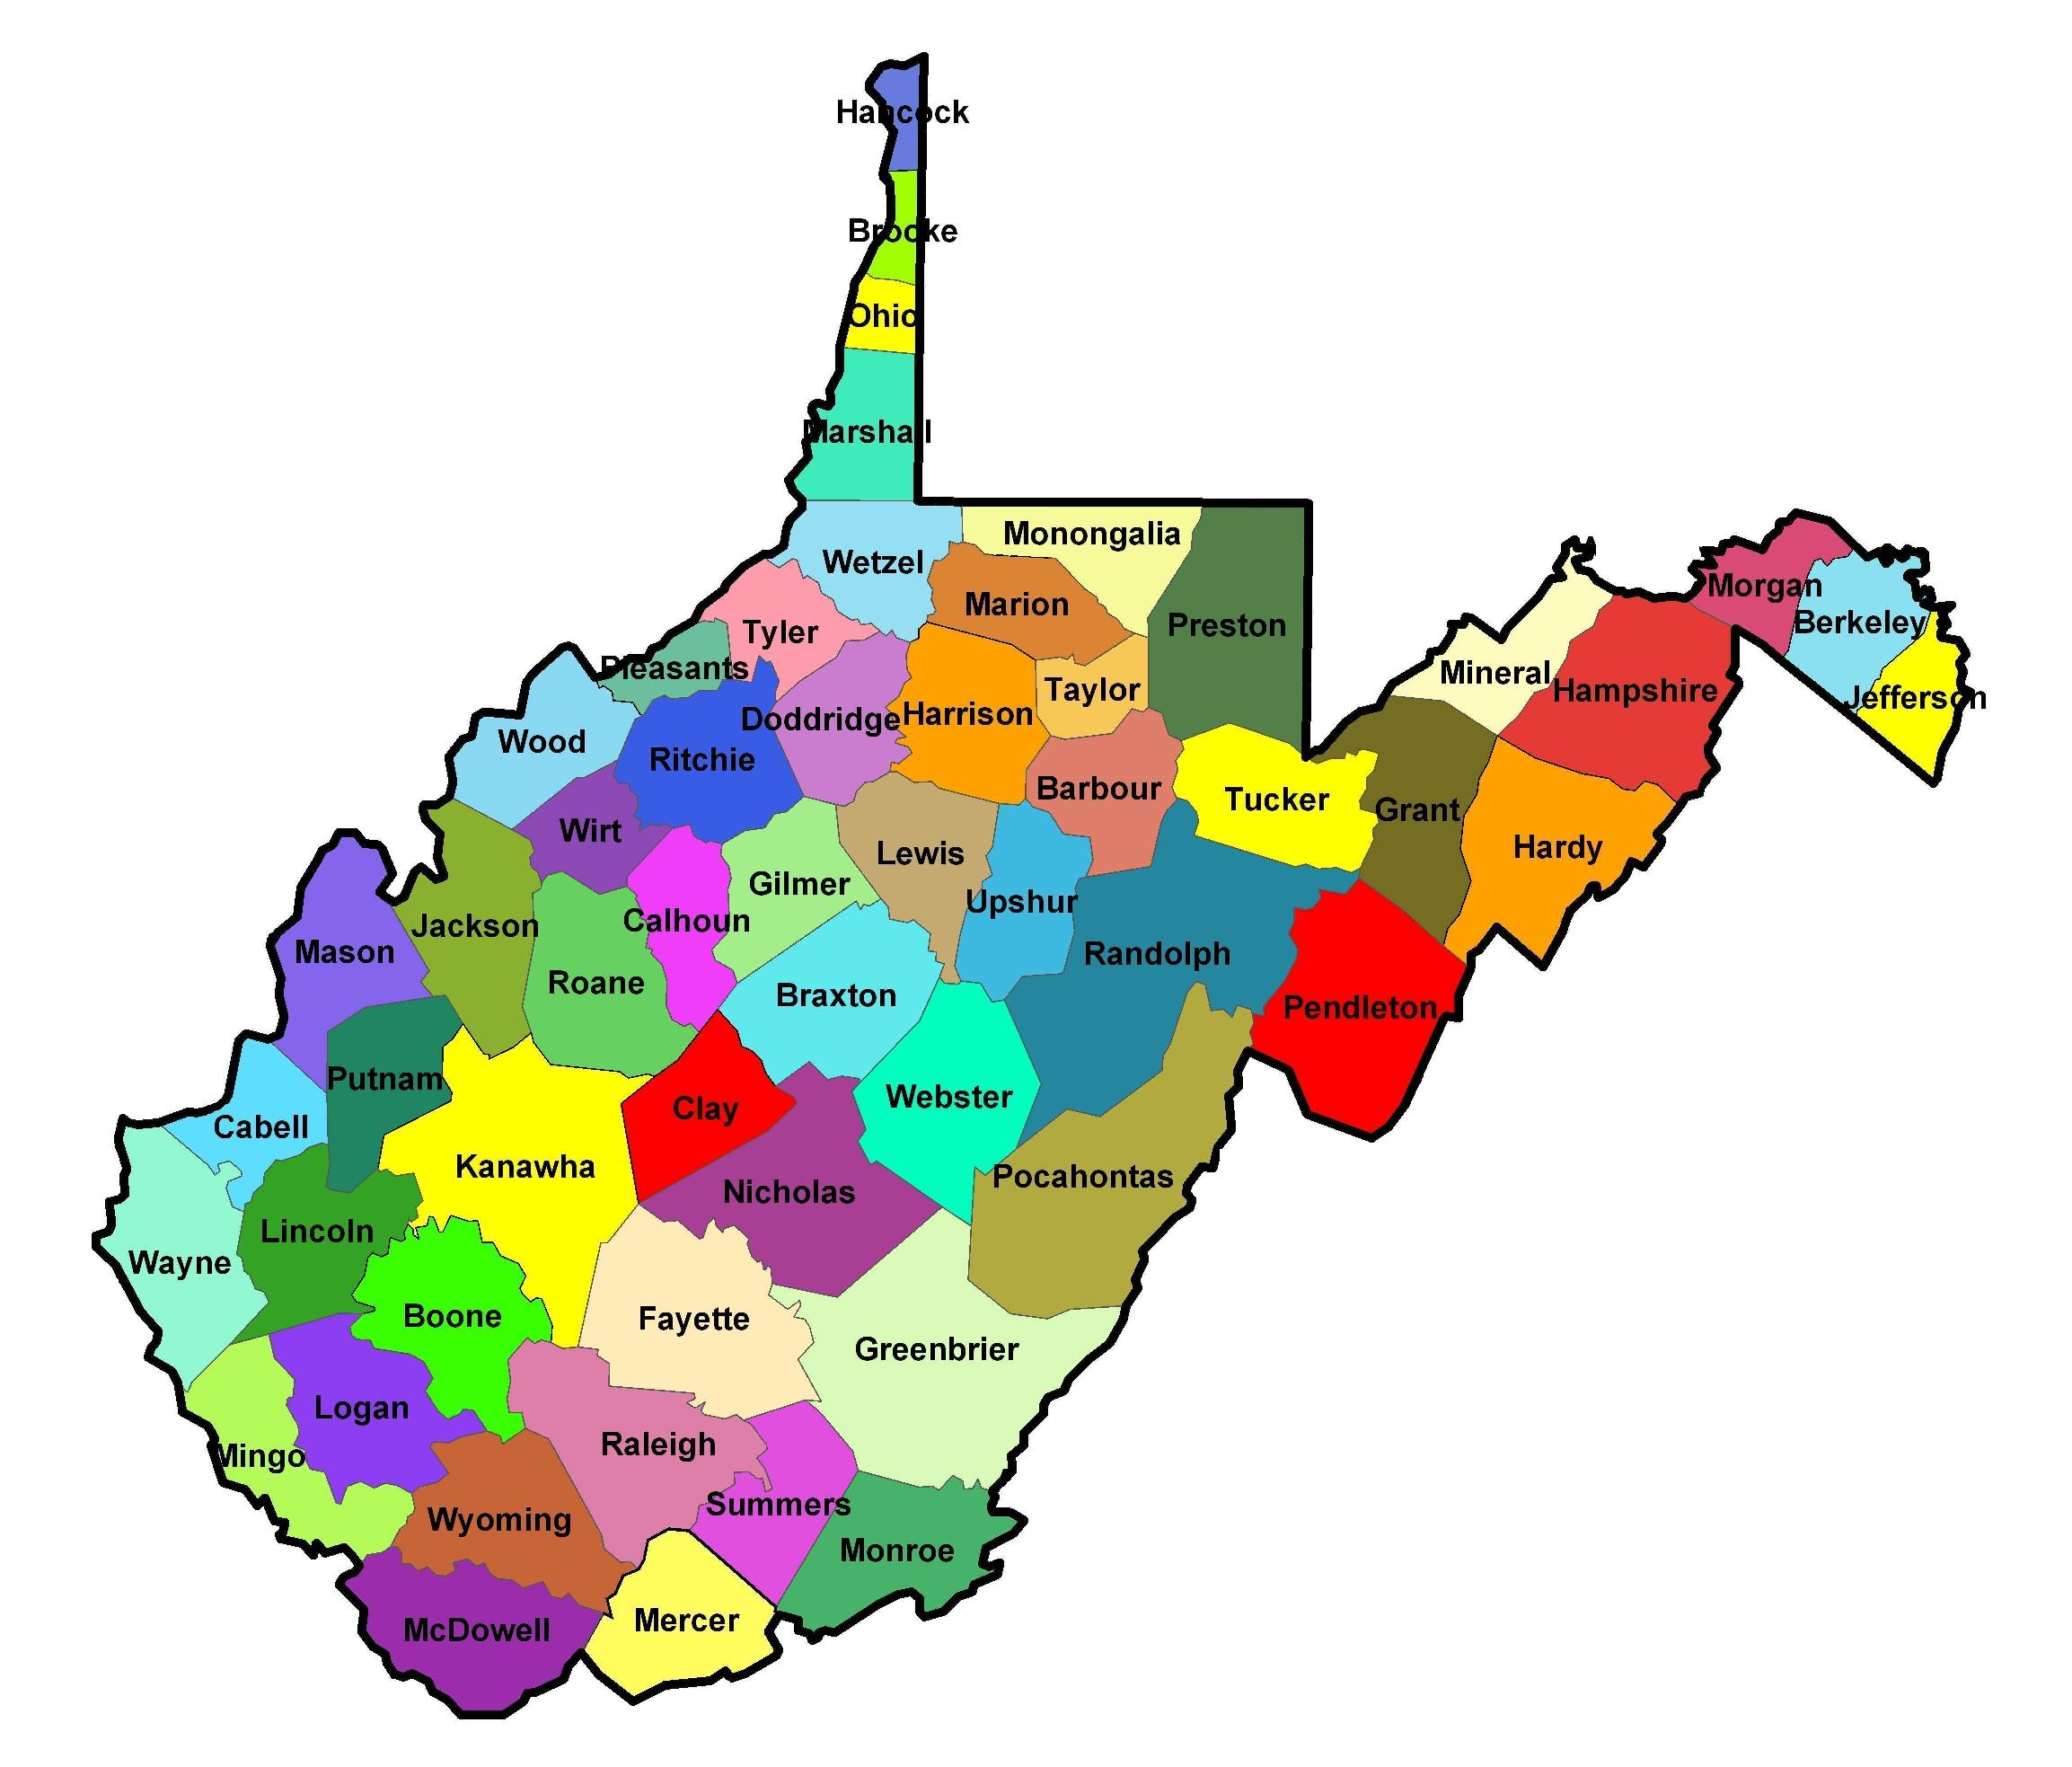 Map Of West Virginia With Counties And Cities Swimnovacom - Wv map with cities and counties